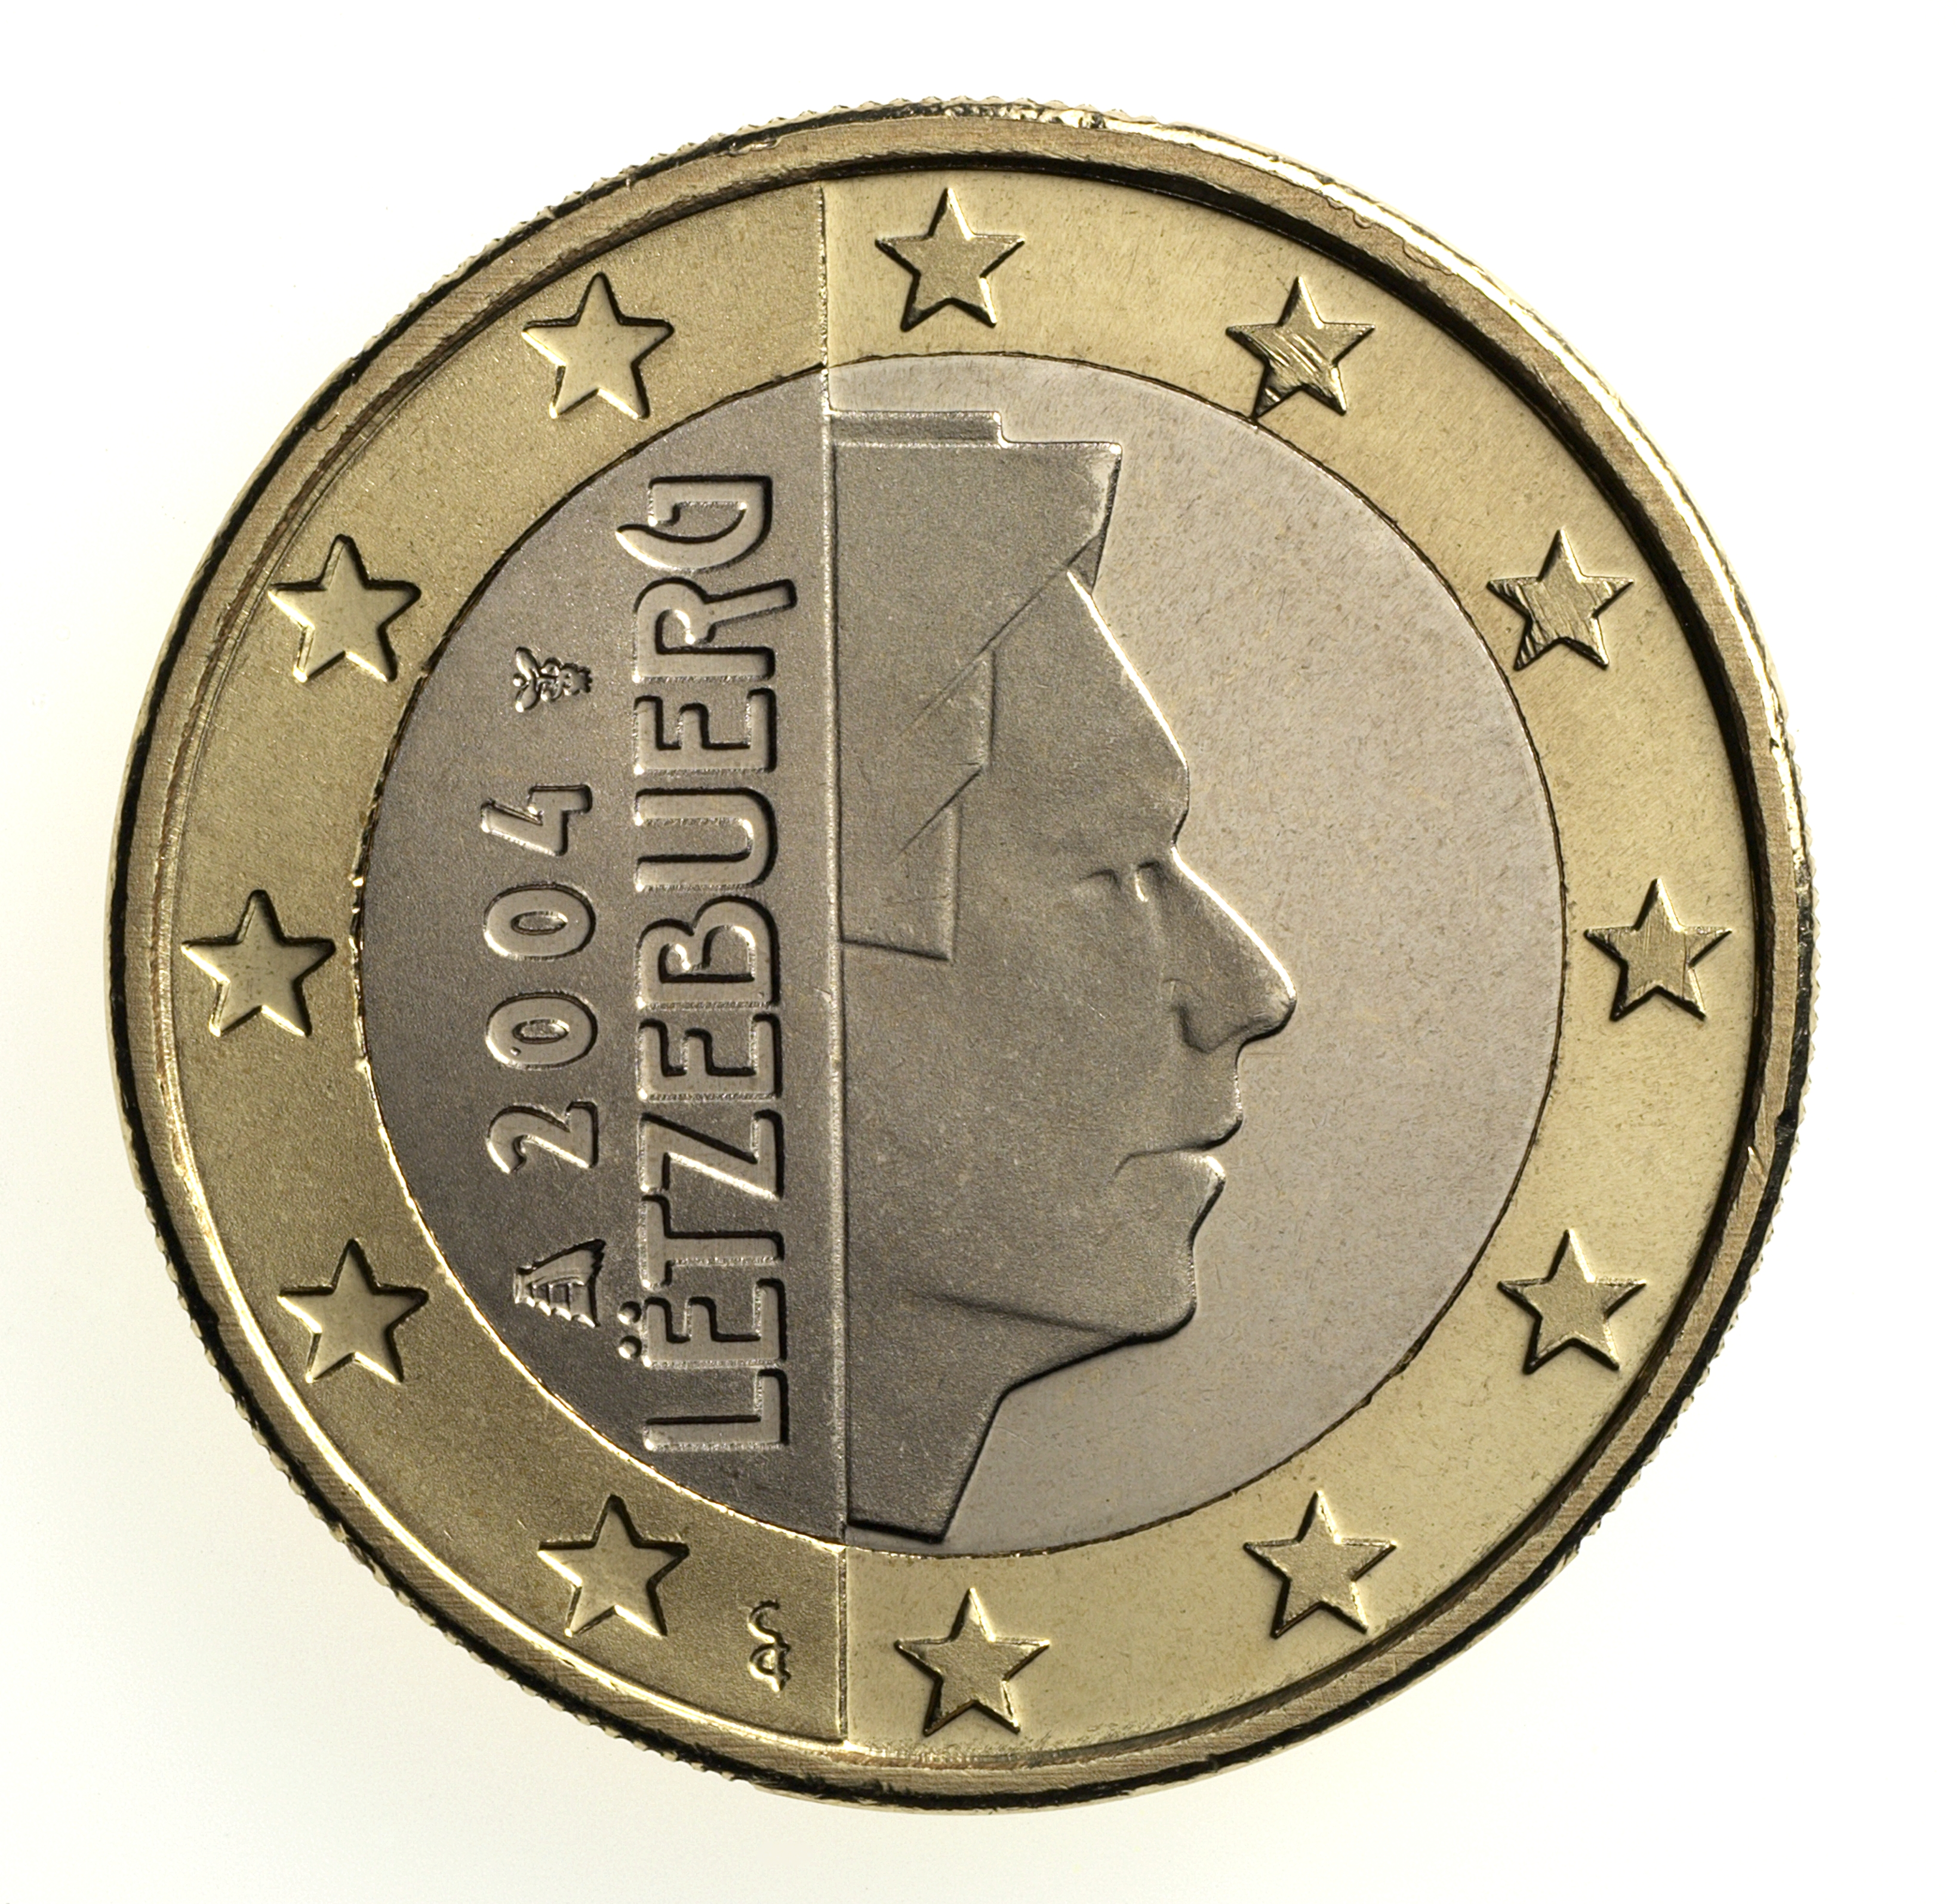 banque centrale du luxembourg luxembourg s euro coins. Black Bedroom Furniture Sets. Home Design Ideas